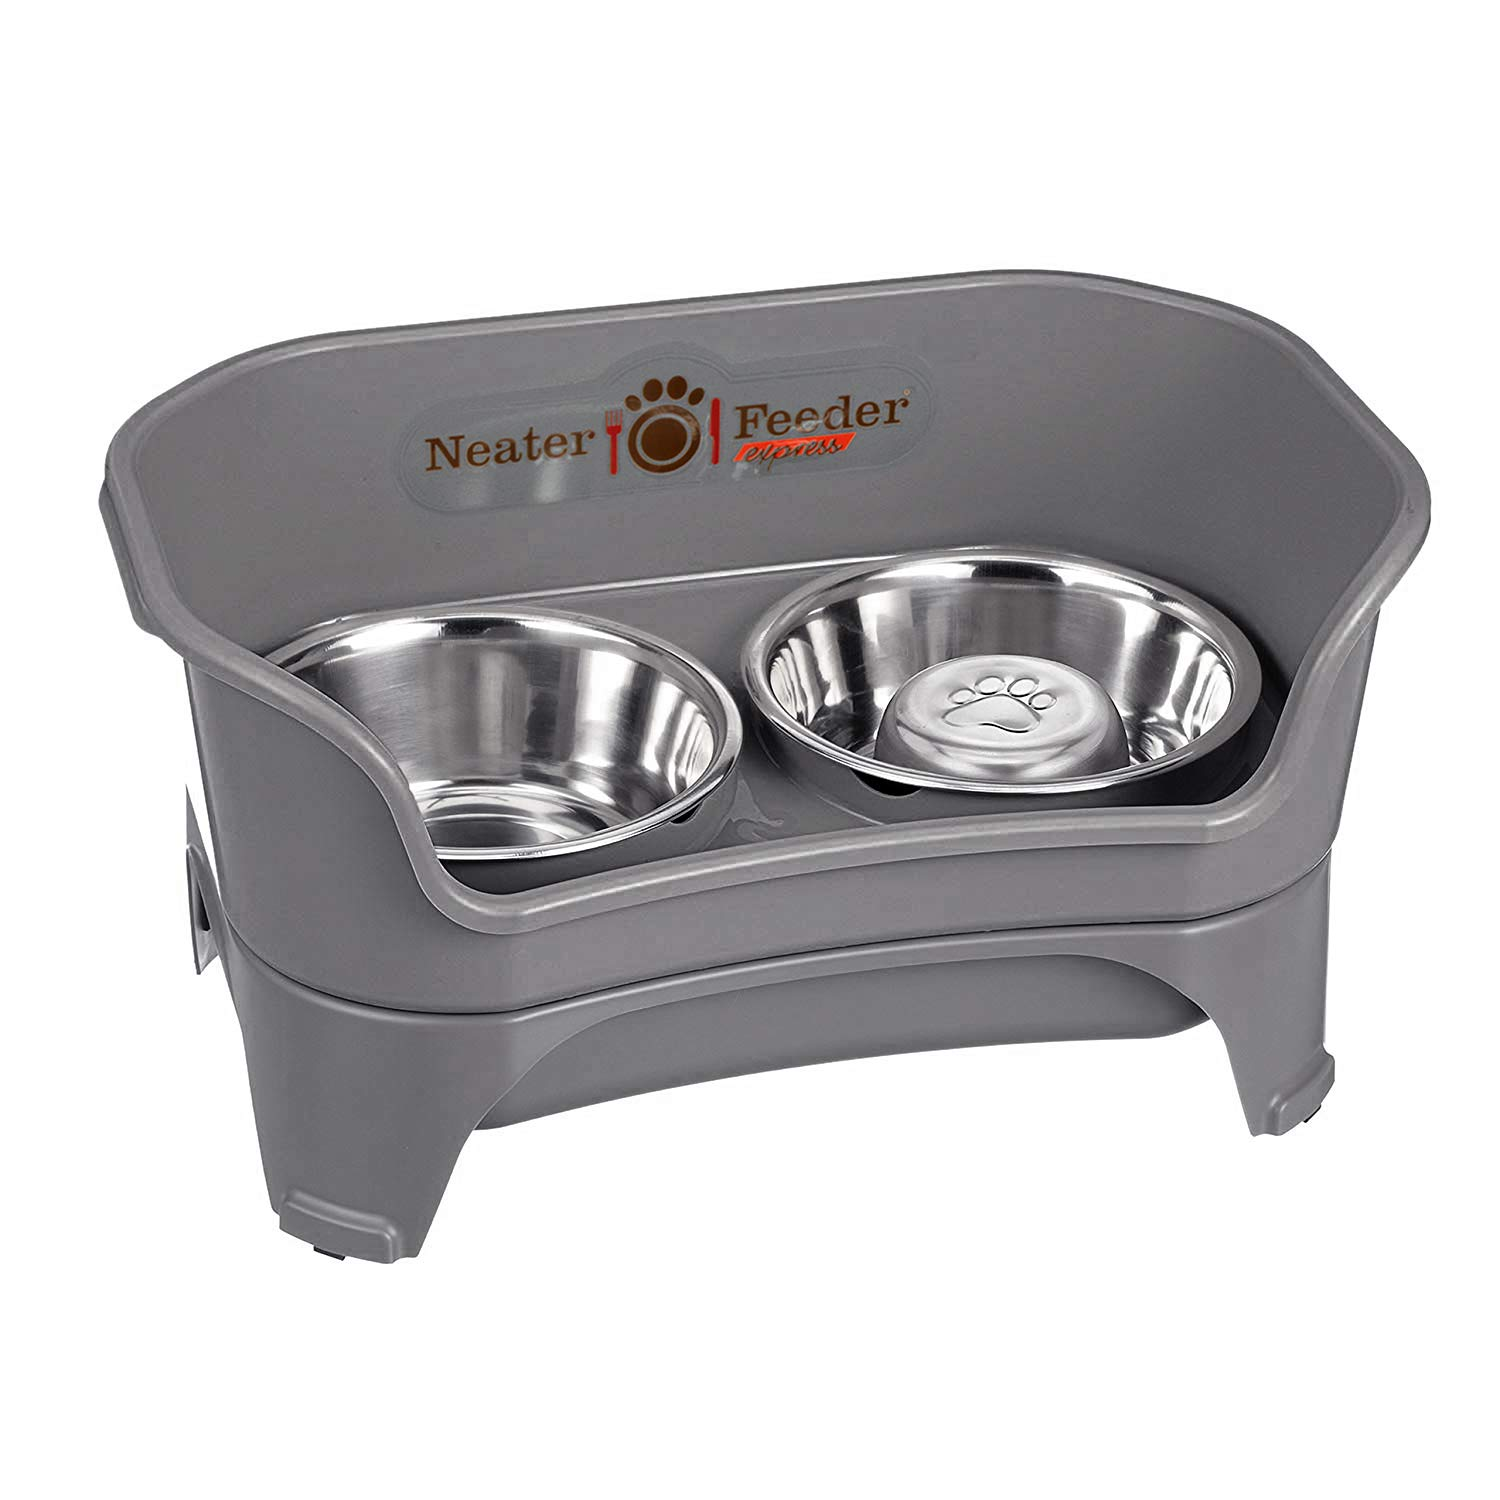 Neater Feeder Express (Medium to Large Dog, Gunmetal) & Slow Feed Bowl Combination Package by Neater Feeder